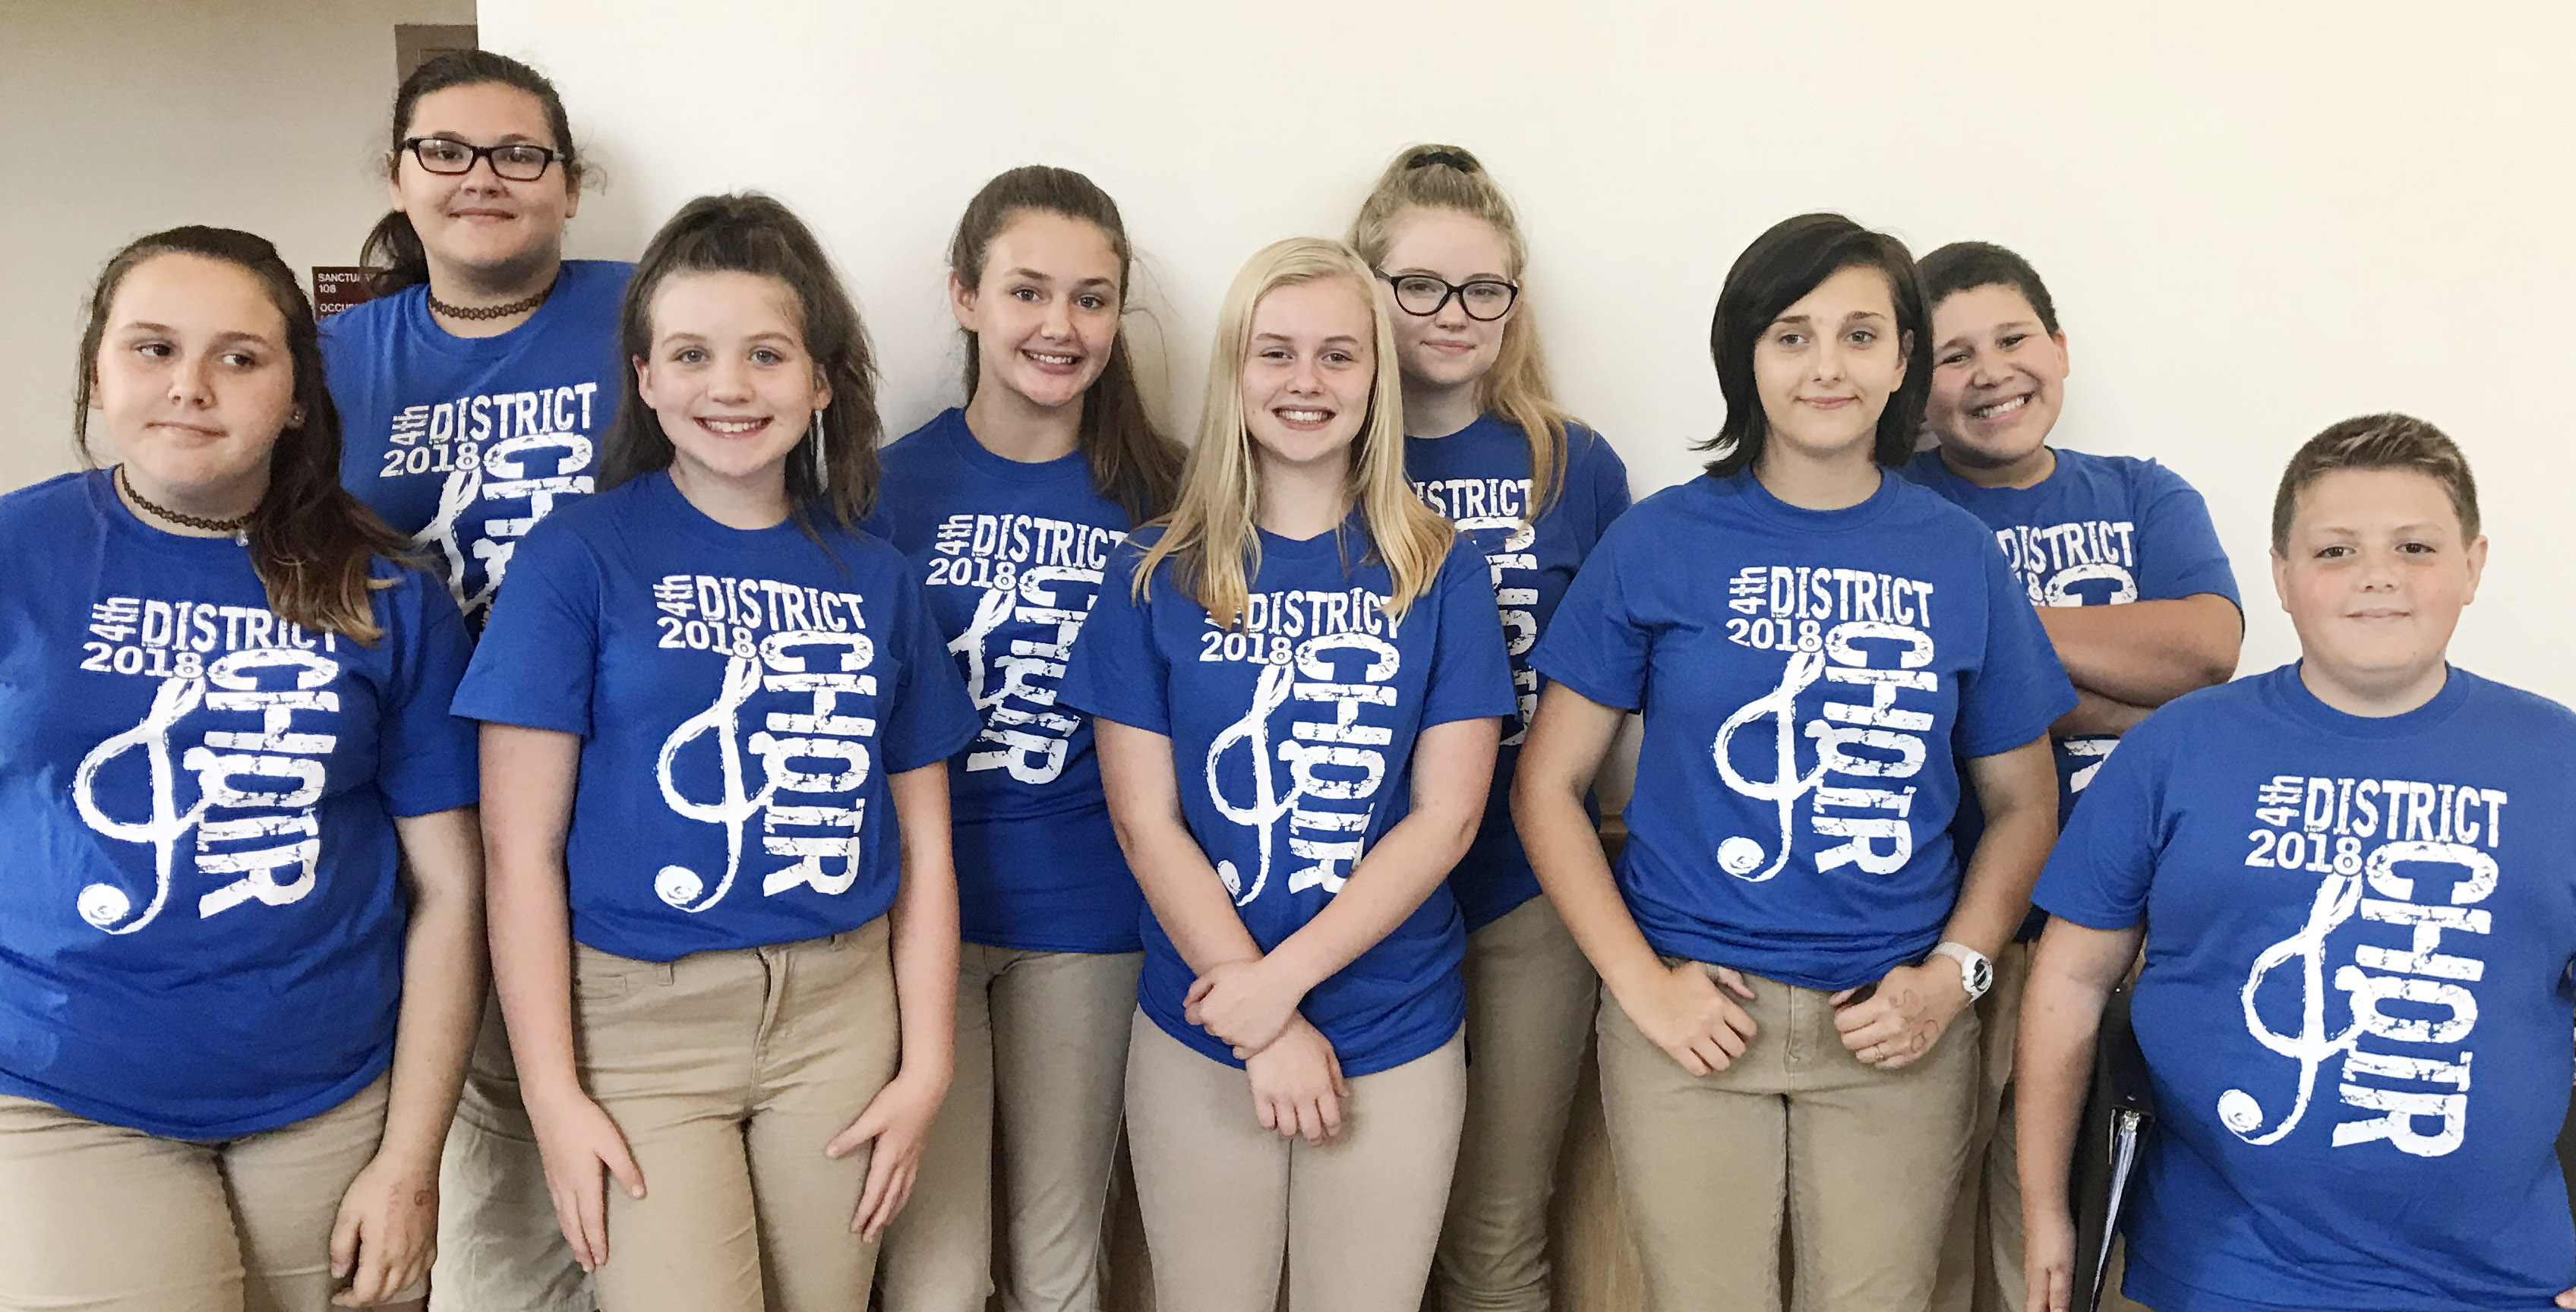 From left, CMS eighth-grader Kadence Houk, seventh-grader Allison Sumners, eighth-graders Mikaela Scharbrough and Haylee Allen, CHS freshman Gabby Skaggs, eighth-graders Whitney Frashure, Glory Deckard and Zeke Bell and seventh-grader Nathan Ray participate in the Junior High Choir at the Fourth District Choral Festival. Absent from the photo is freshman Abby Turner.